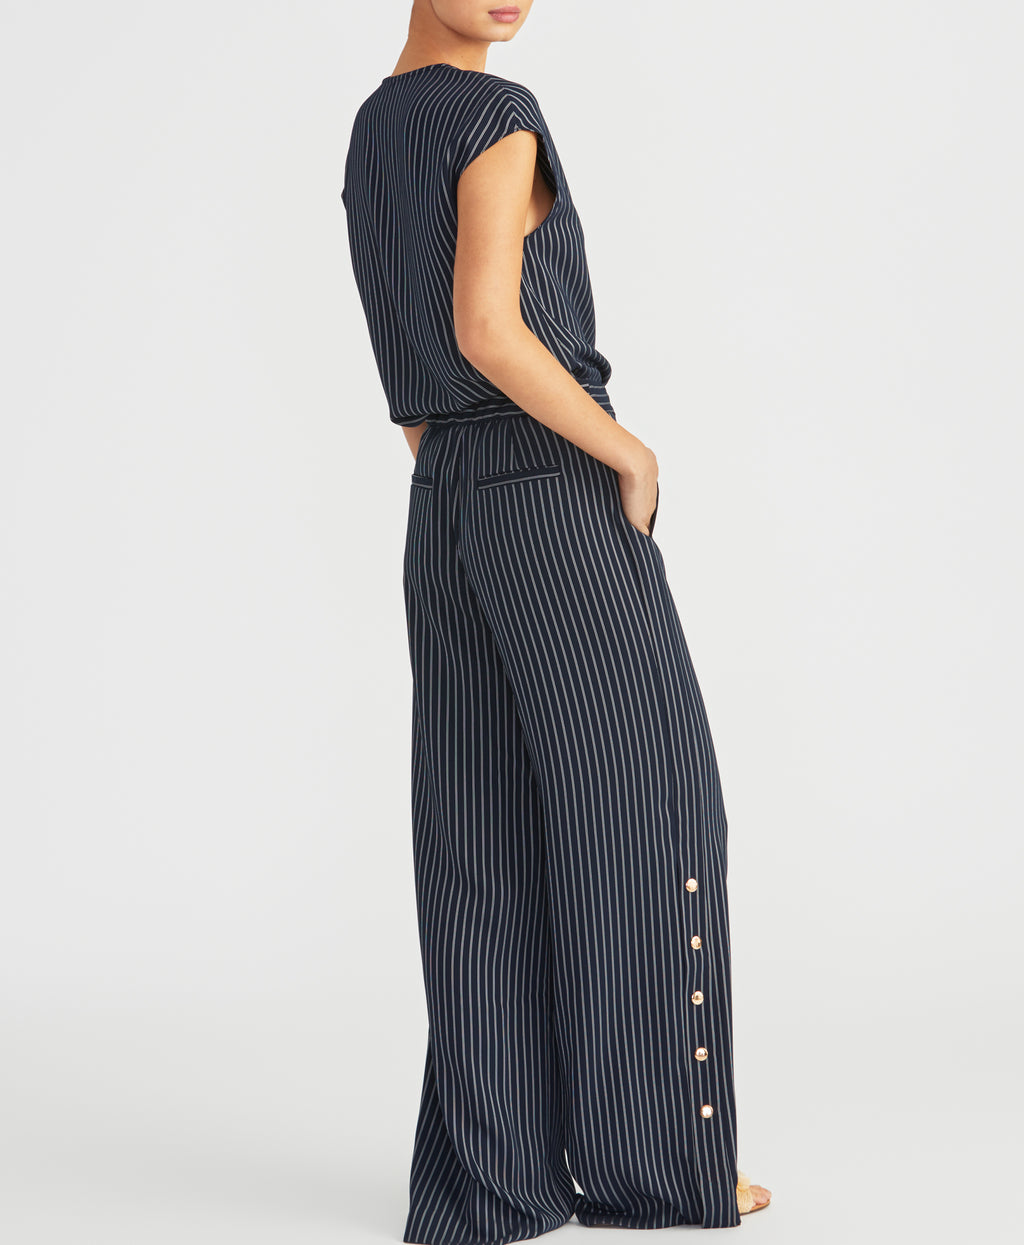 BUTTON TROUSER | BUTTON TROUSER